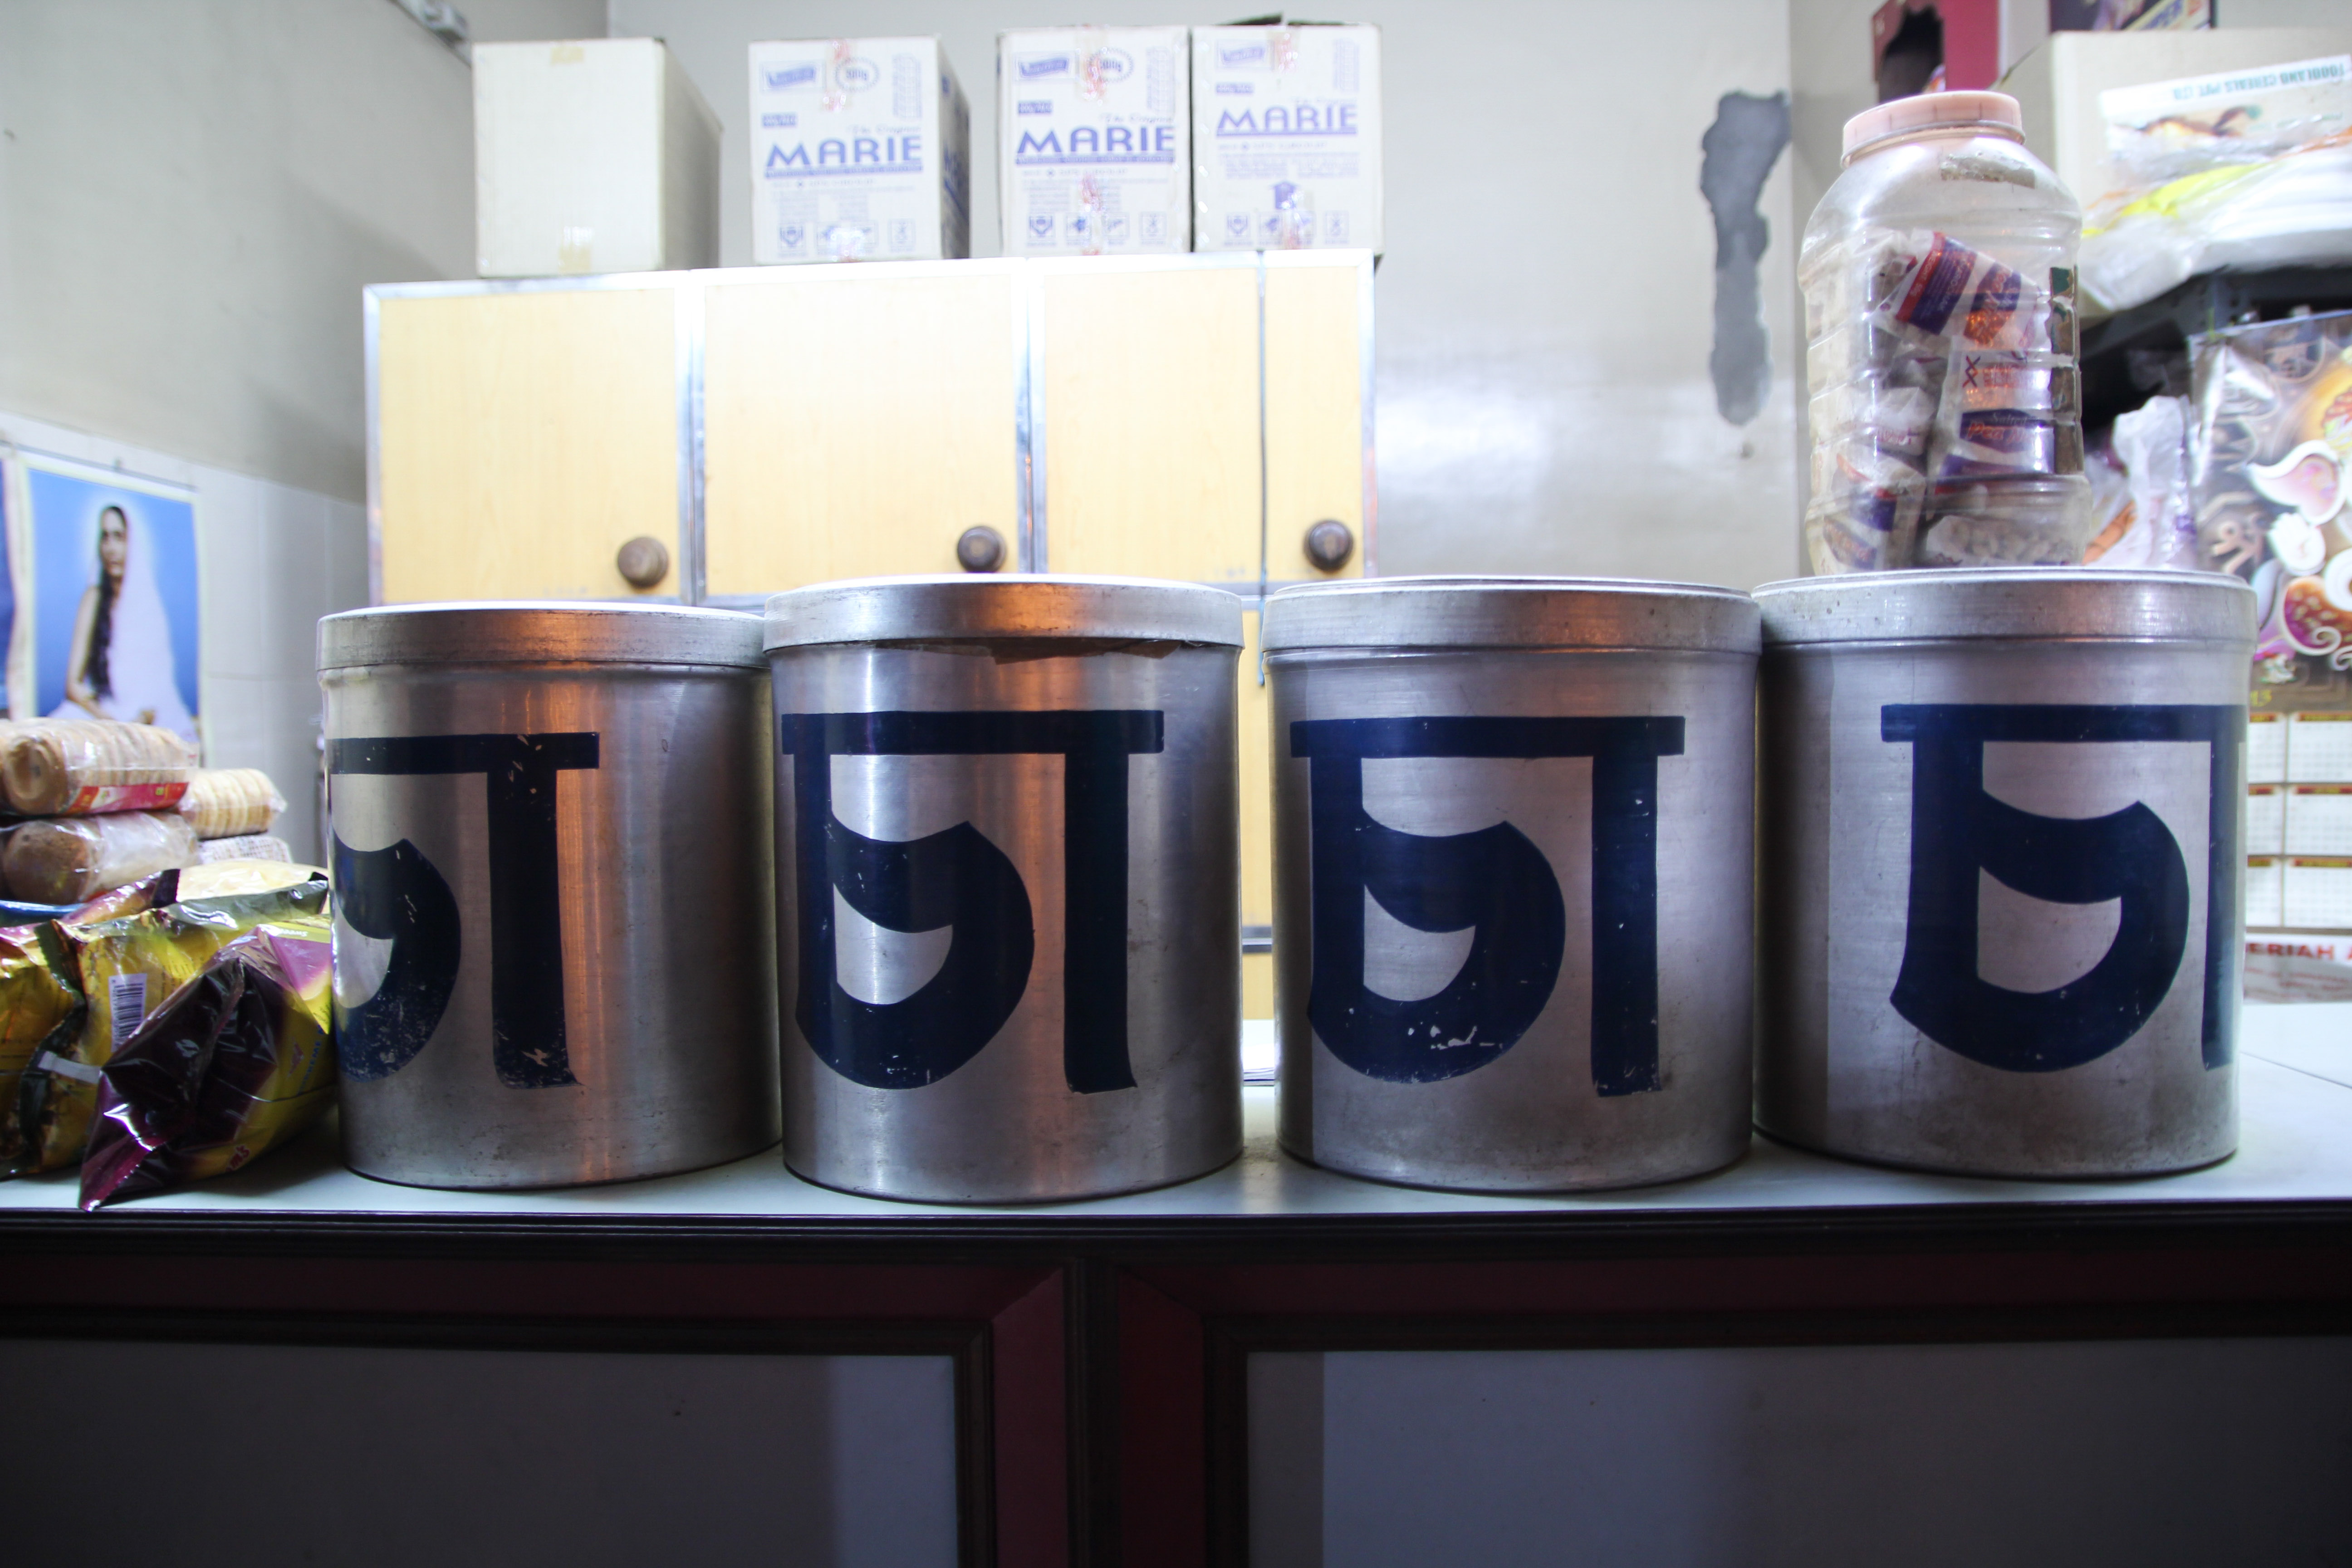 Tins of chai, or cha in Bengali, in a Kolkata market.